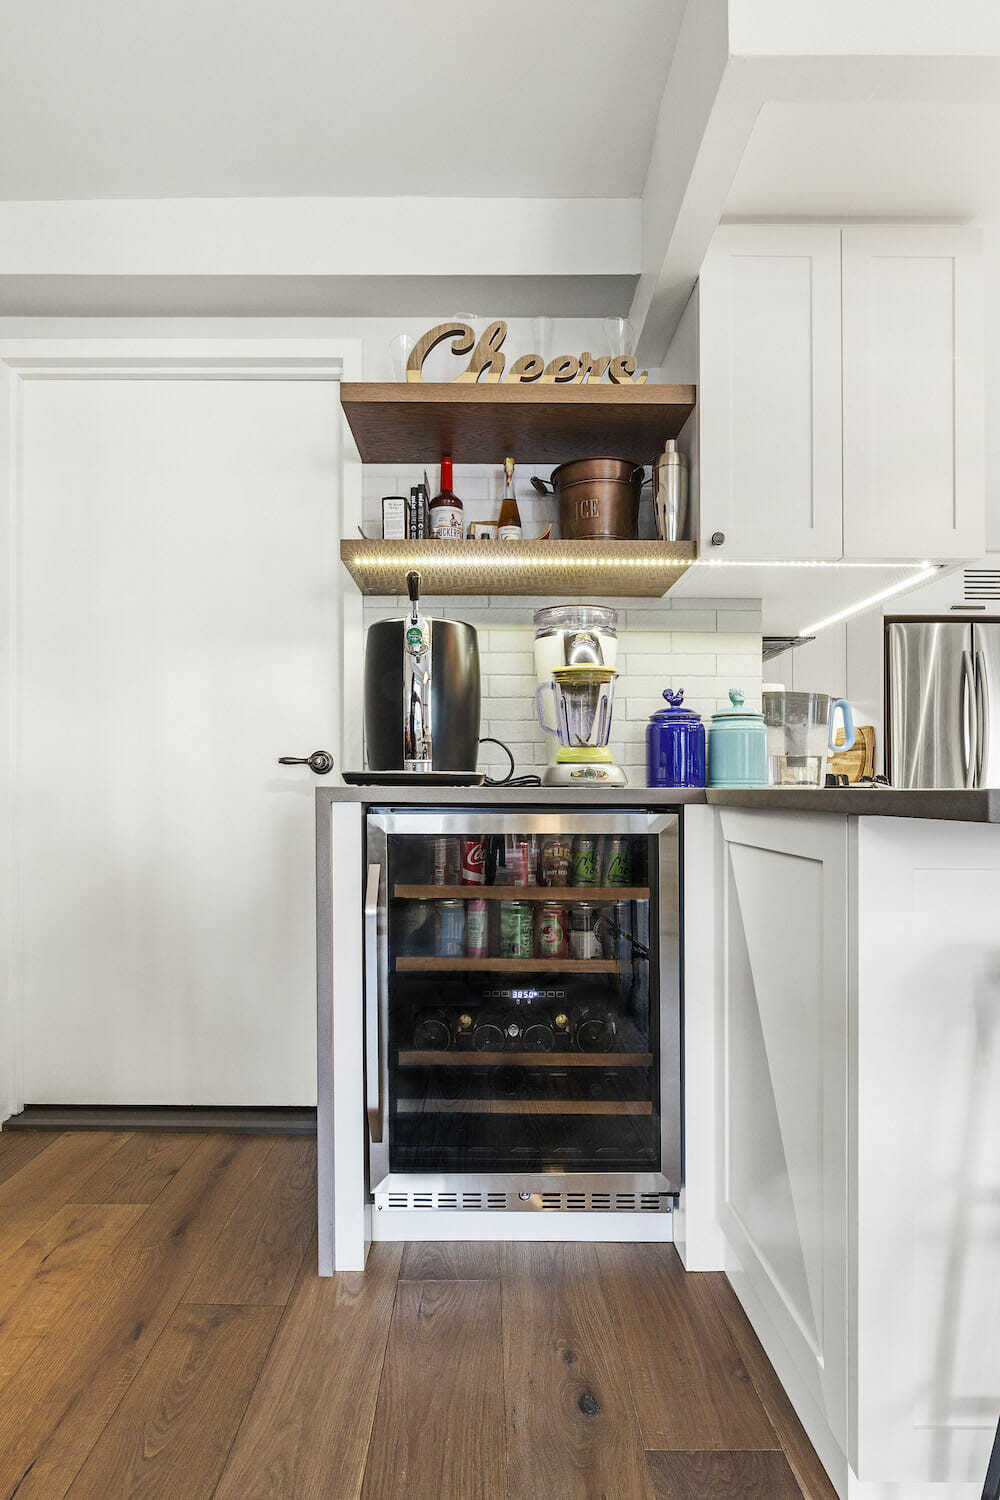 Image of a small wine fridge in kitchen nook